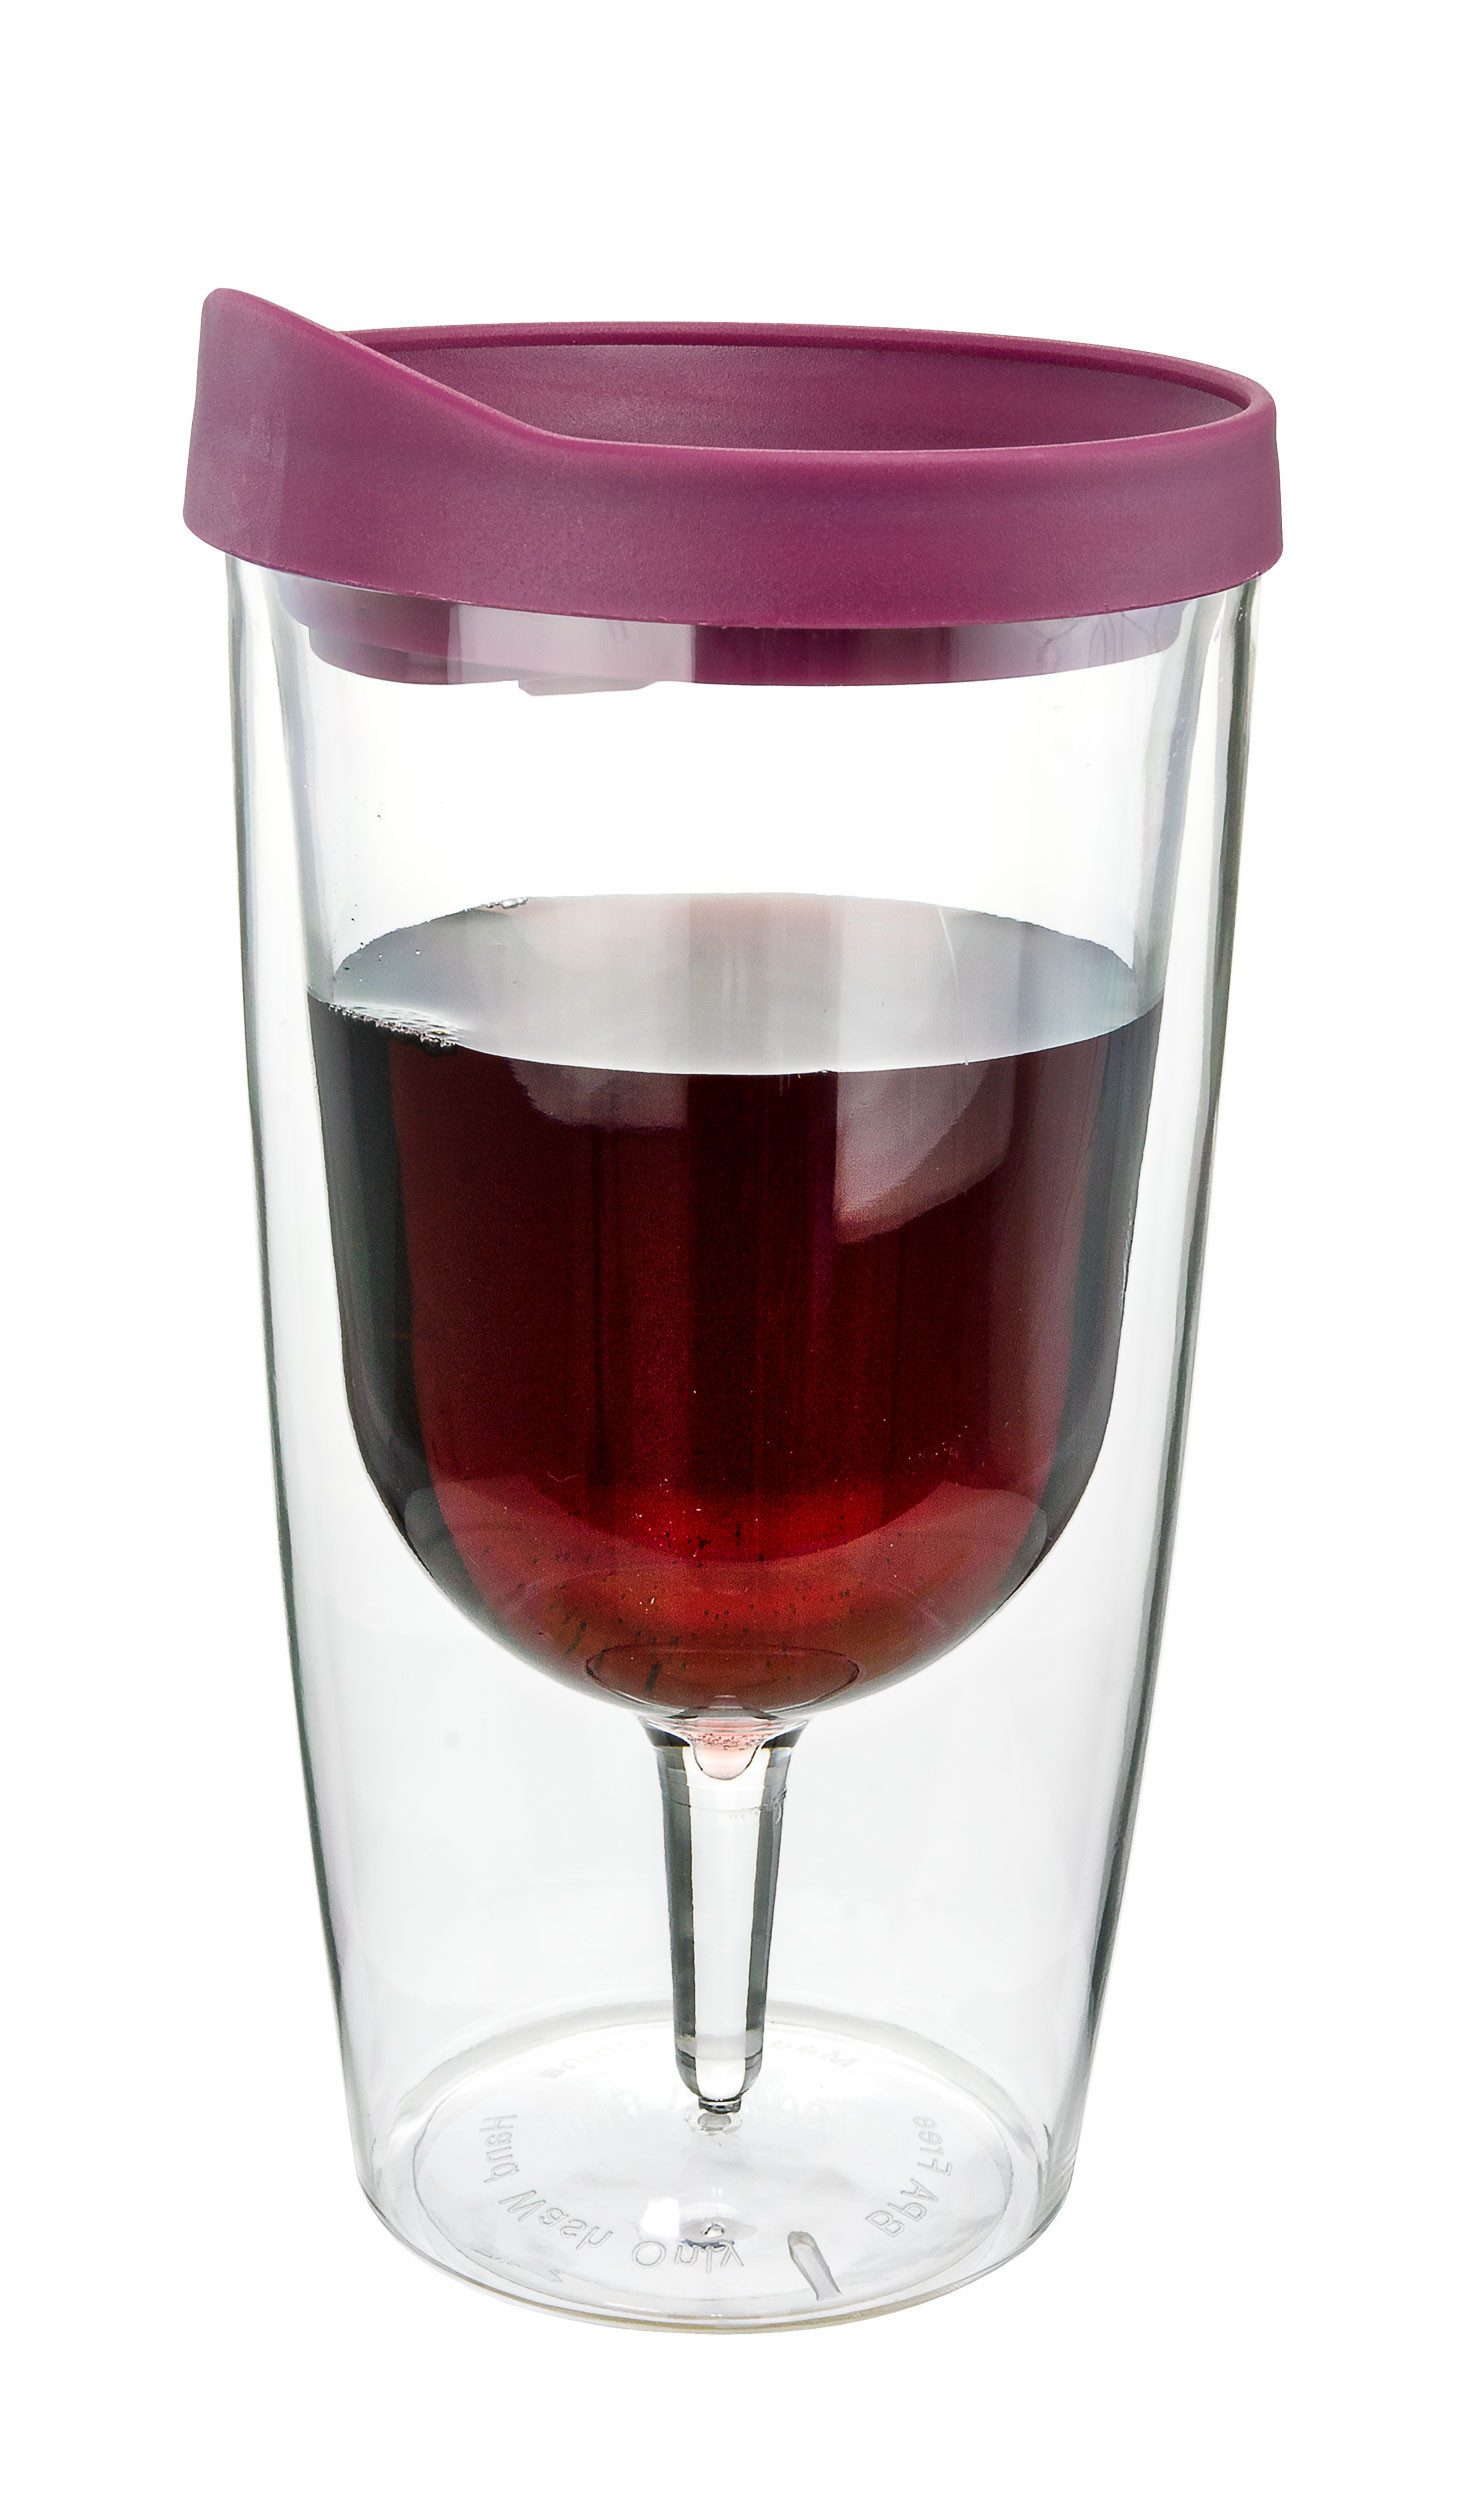 Merlot Red Insulated Wine Tumbler - Double Wall Acrylic - 10oz